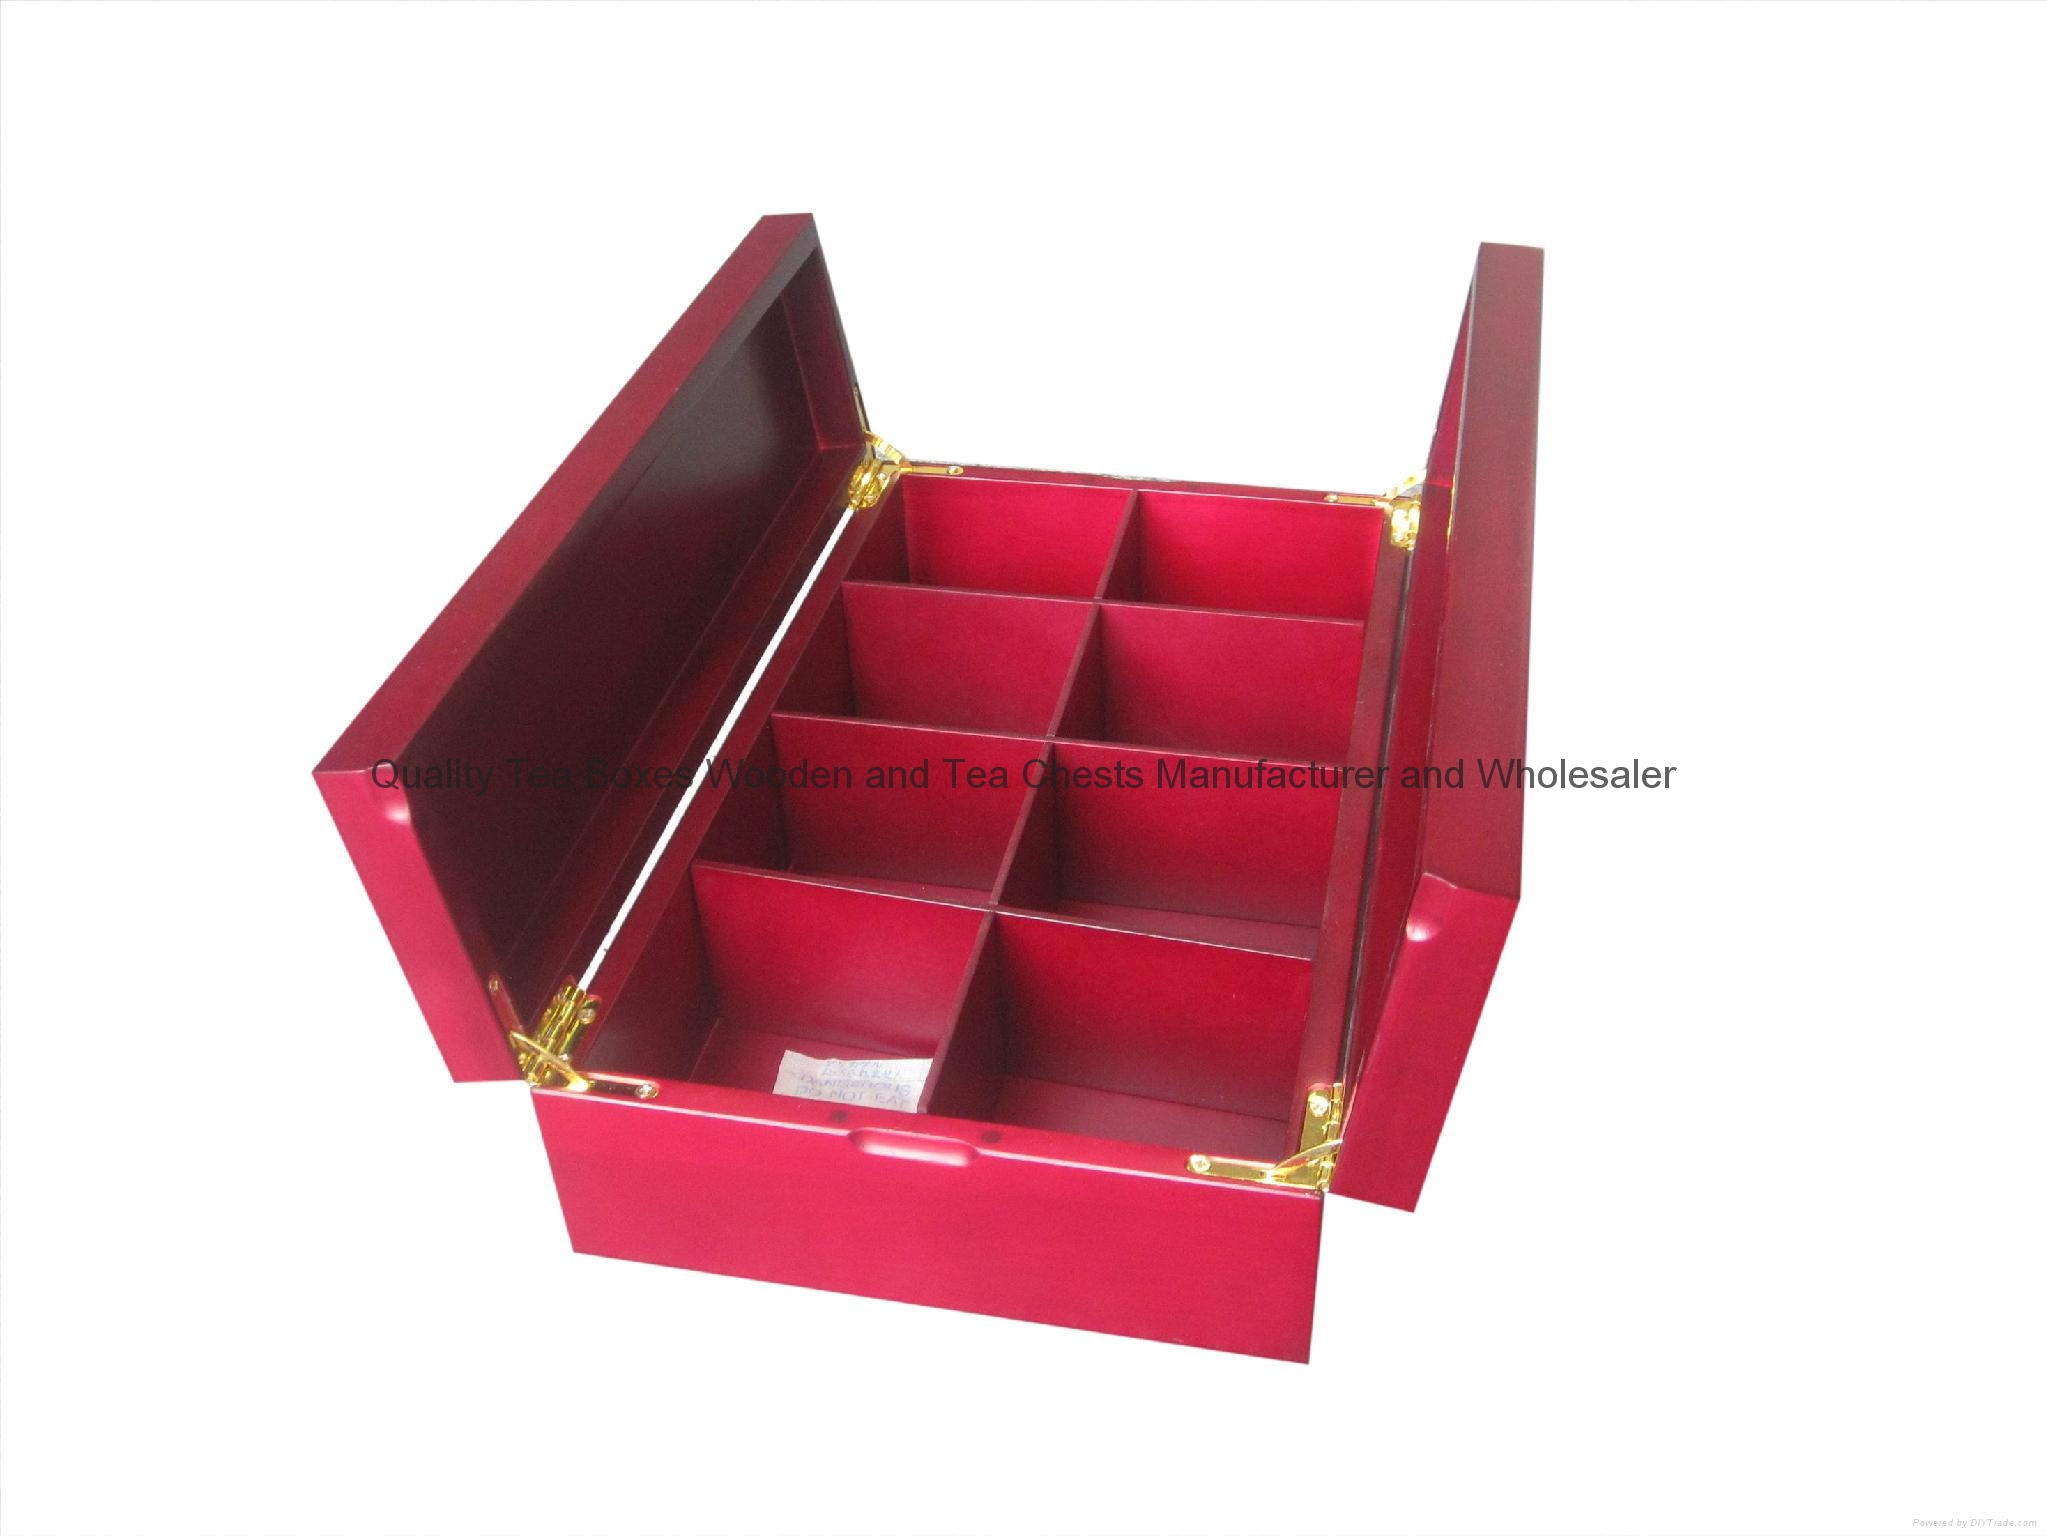 Luxuary New Design Wooden Tea Chest Box 3